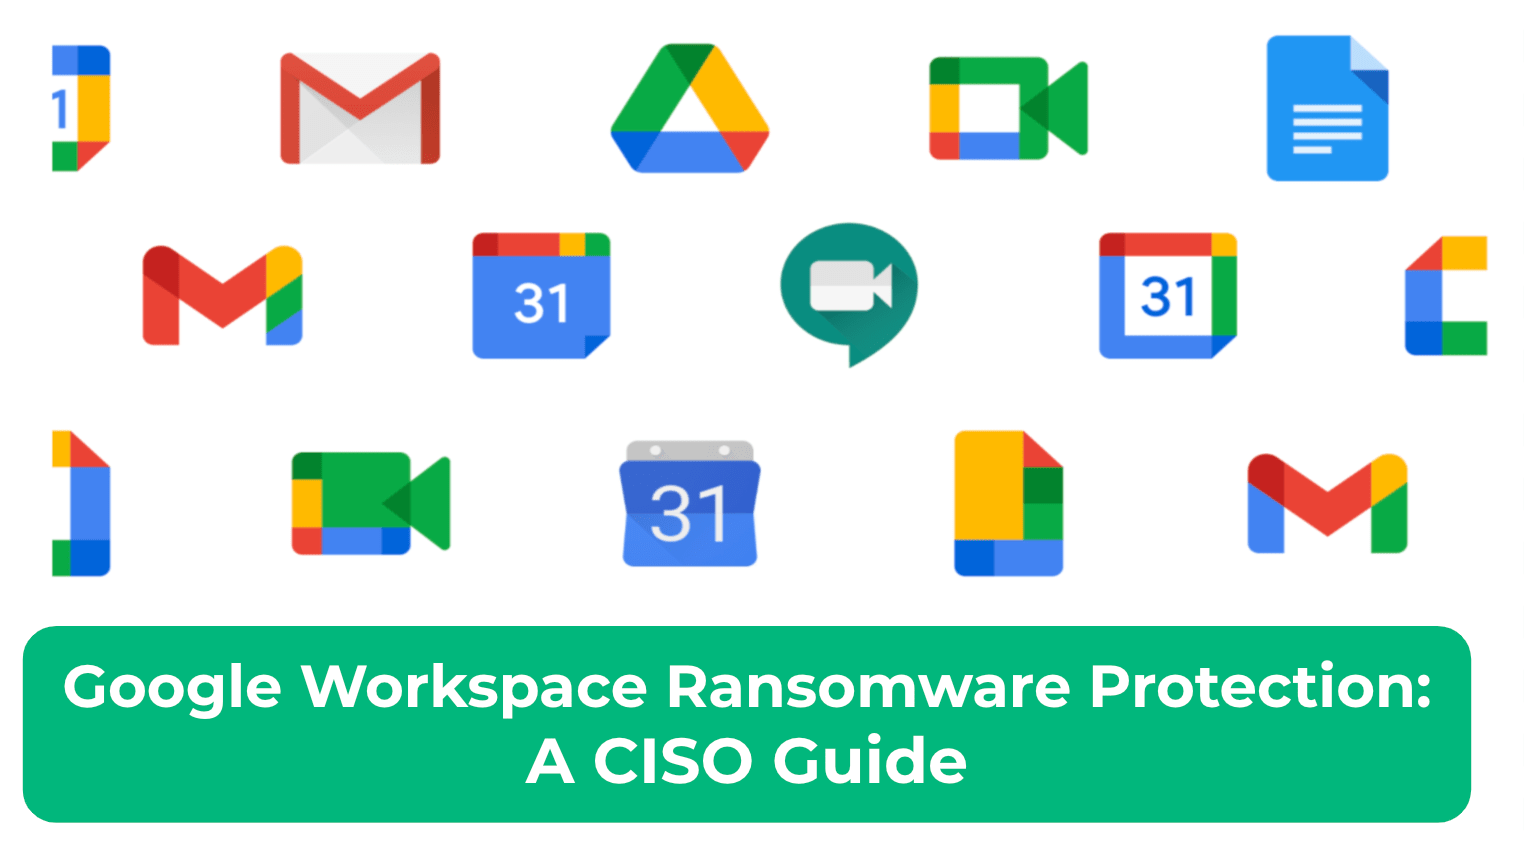 Google Workspace Ransomware Protection: A CISO Guide